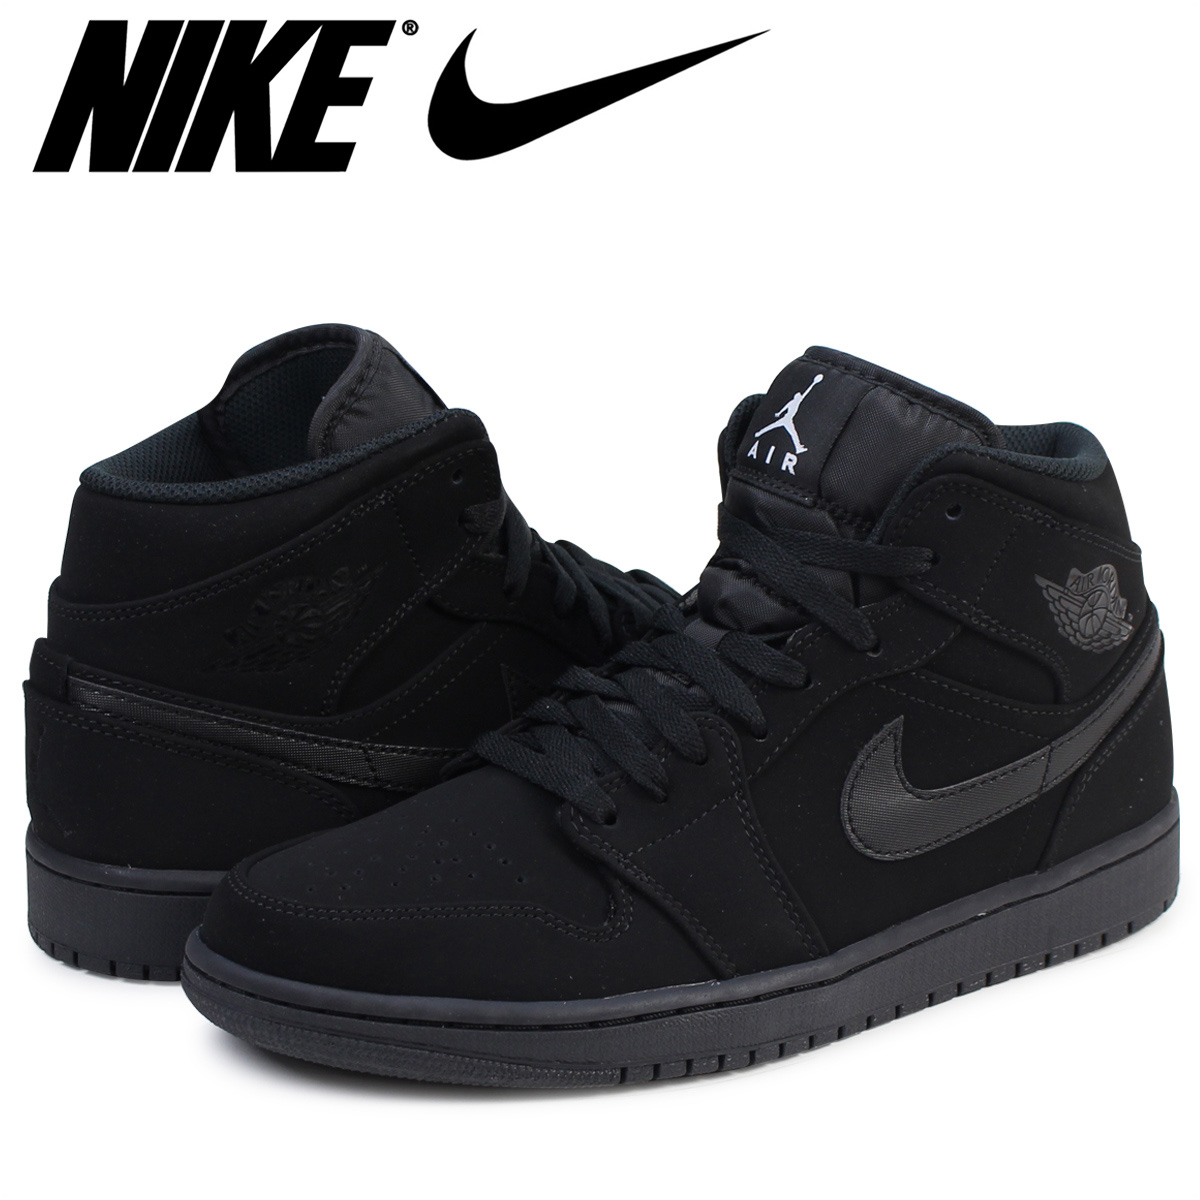 Sugar Online Shop  NIKE Nike Air Jordan 1 sneakers men AIR JORDAN 1 ... ad3edf840